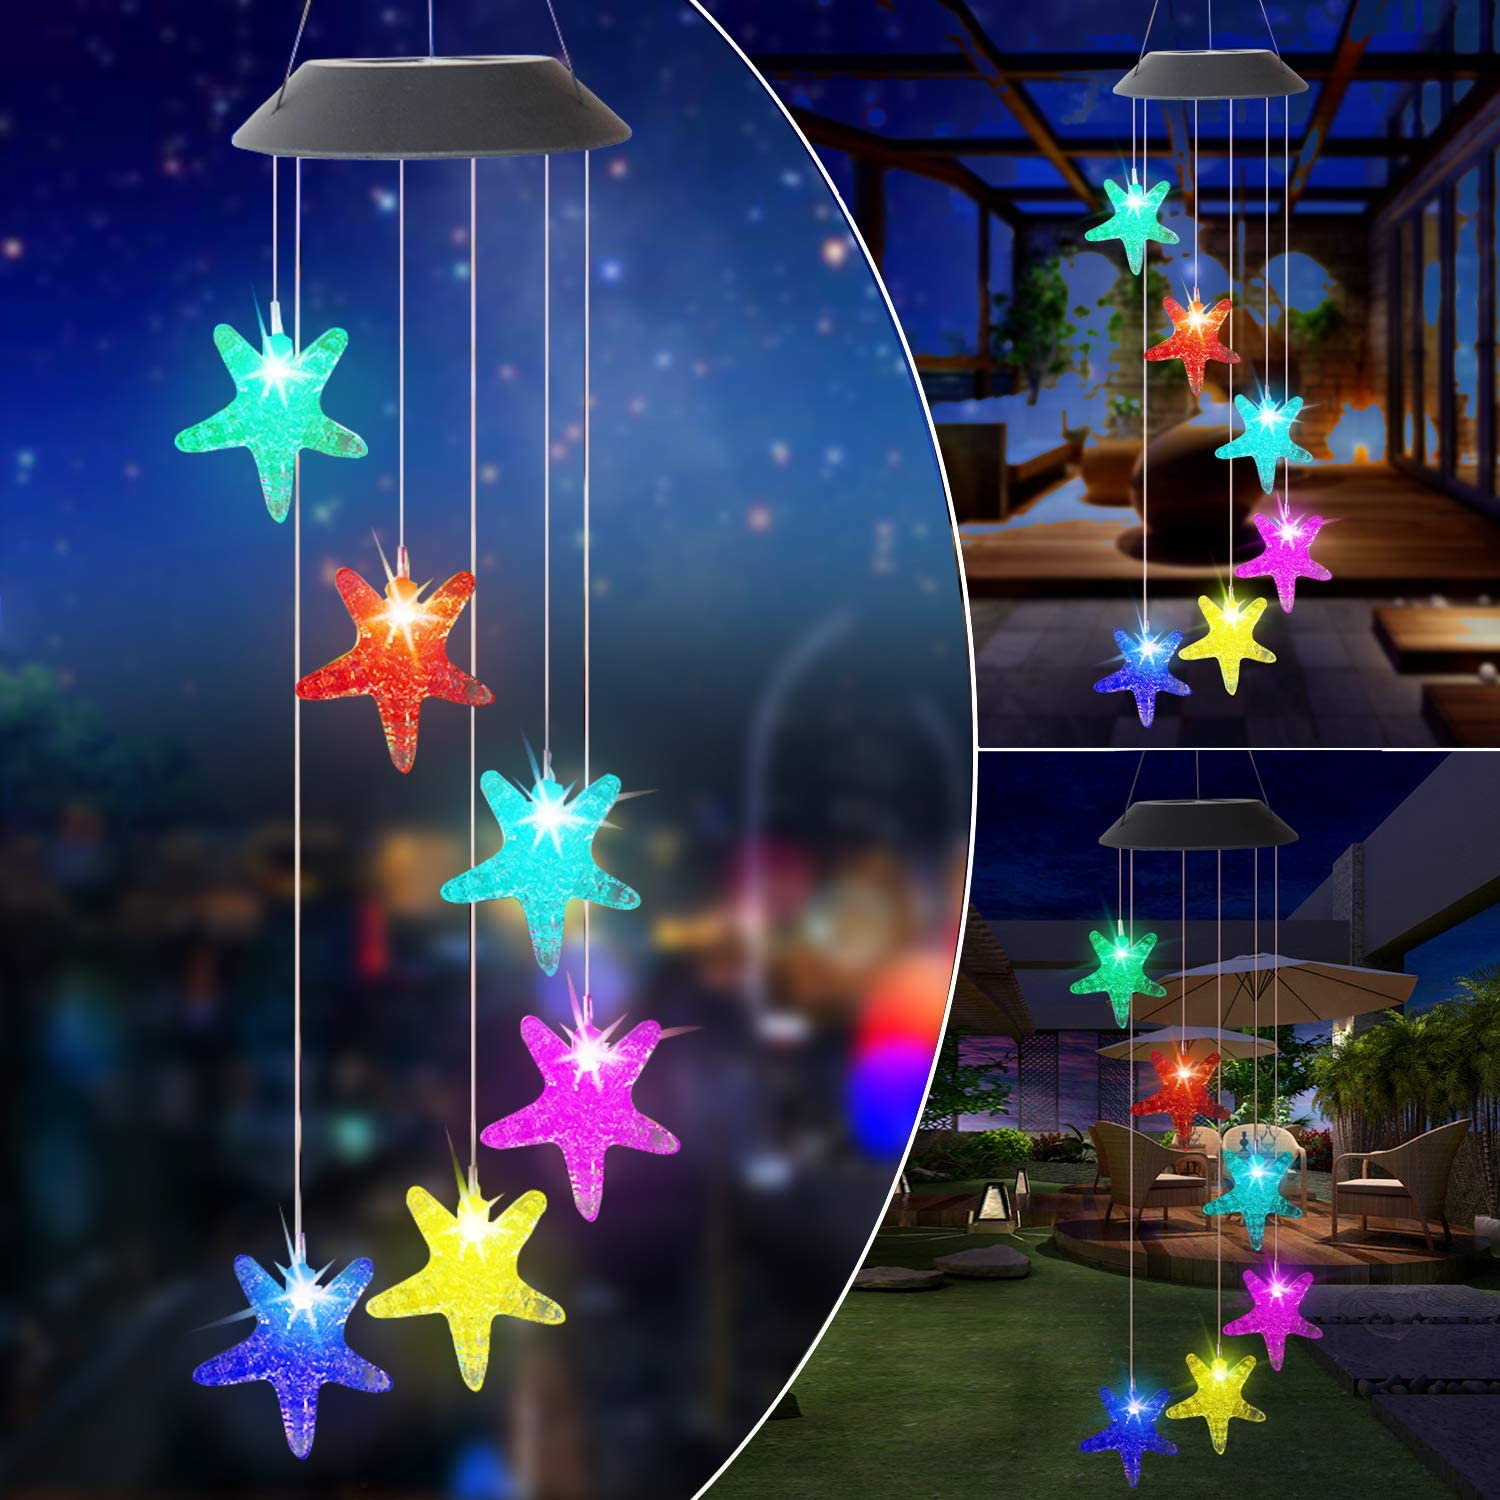 ZXICH Wind Chimes Outdoor Solar,Starfish Color Changing LED Mobile Wind Bell,Waterproof Hanging Patio Light Outdoor Decoration for Home Party Yard Porch Garden Best Gifts for Birthday Mother's Day